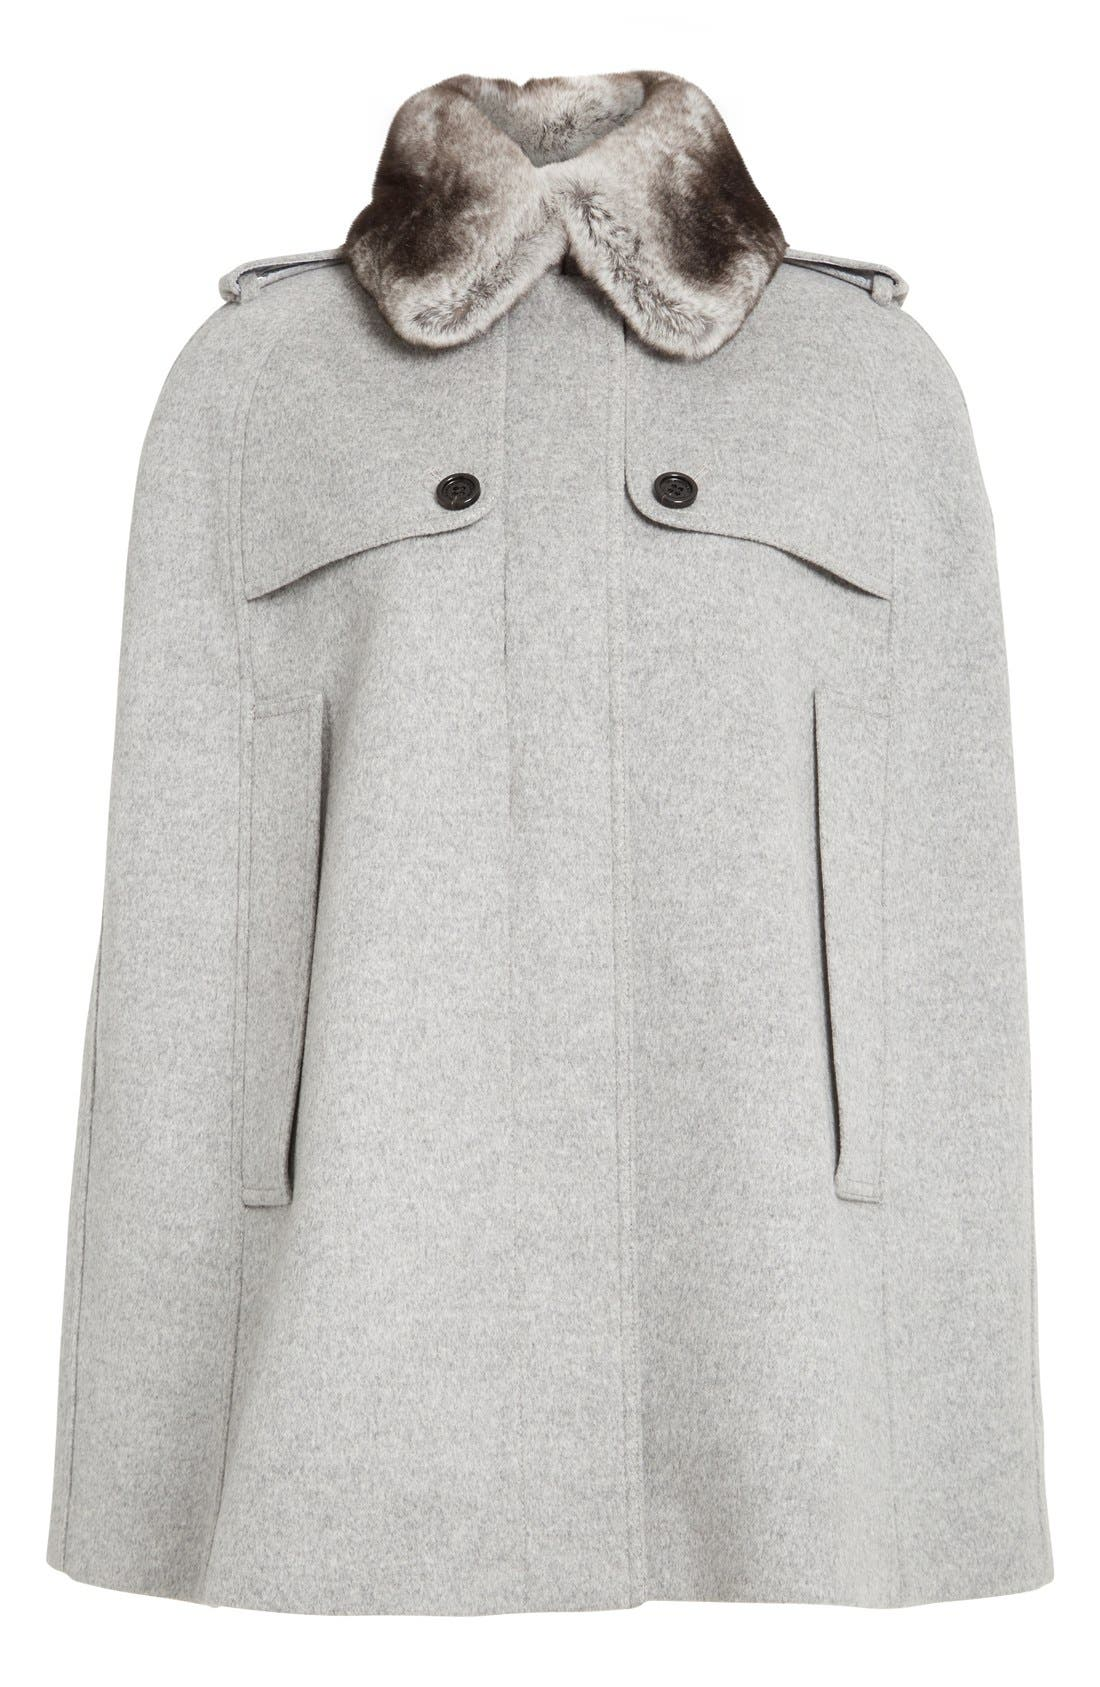 Alternate Image 4  - Burberry 'Wolseley' Wool & Cashmere Trench Cape with Removable Genuine Rabbit Fur Collar